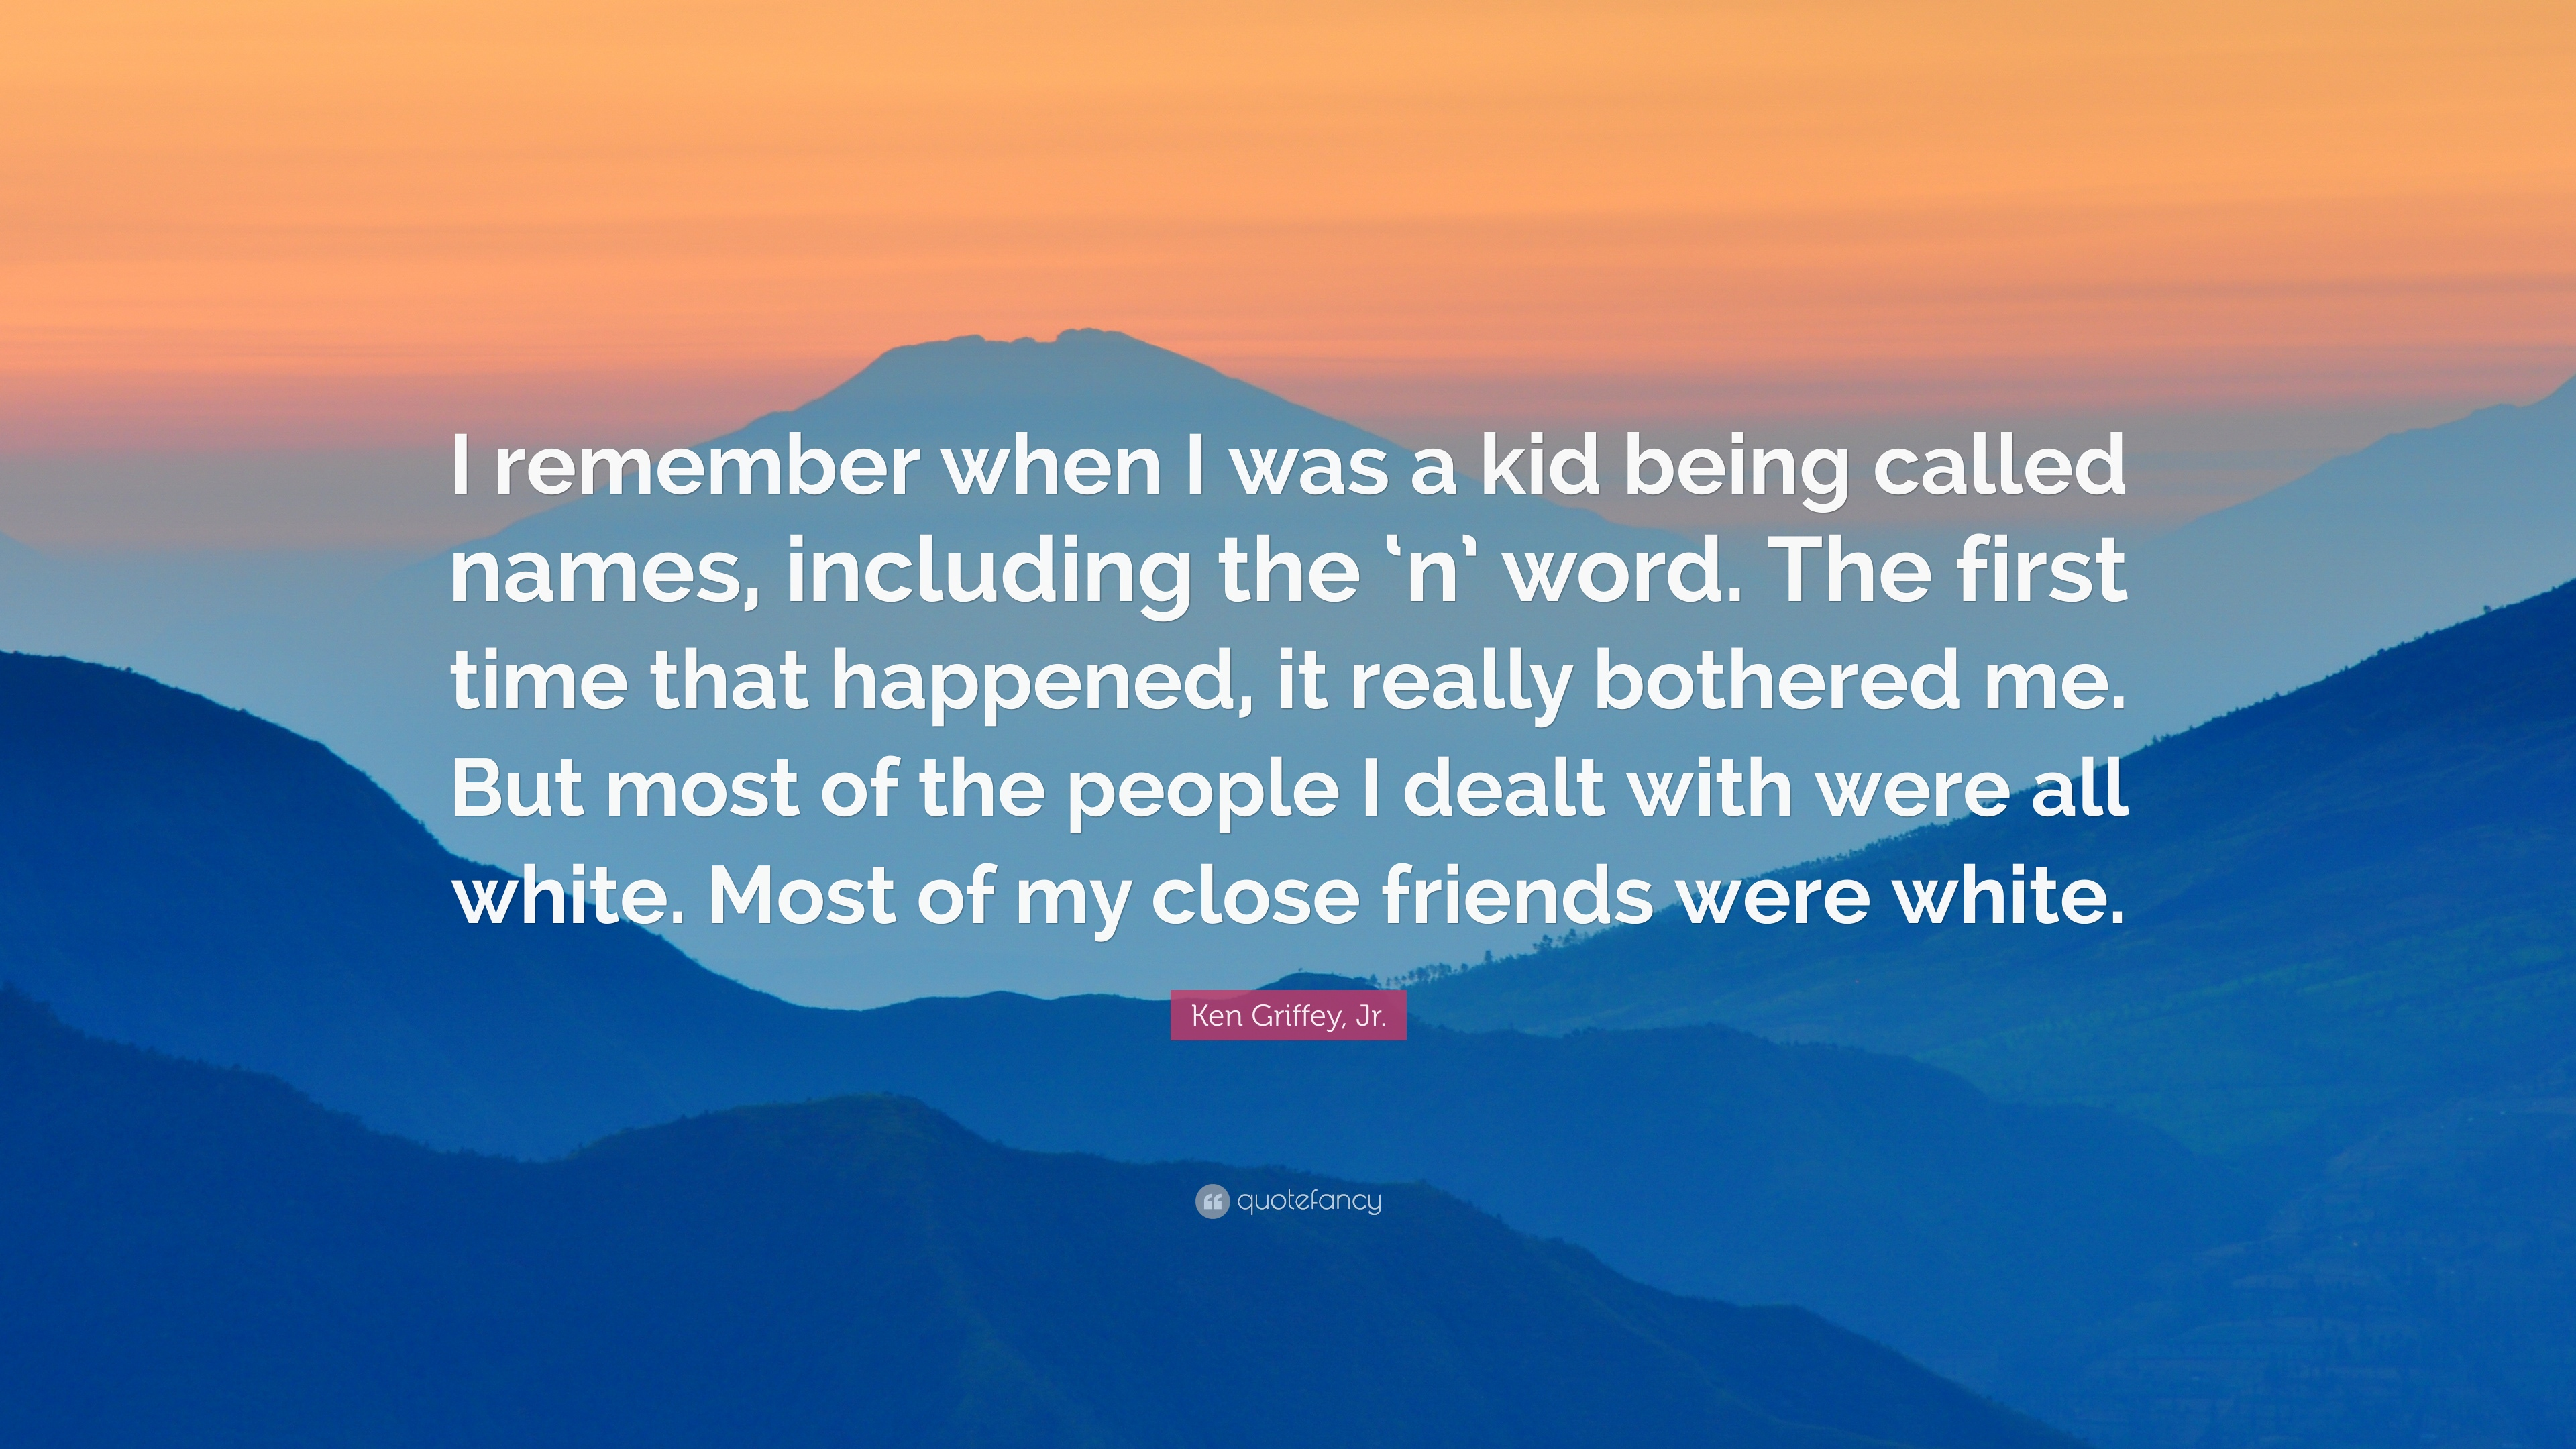 ken griffey jr quote i remember when i was a kid being called